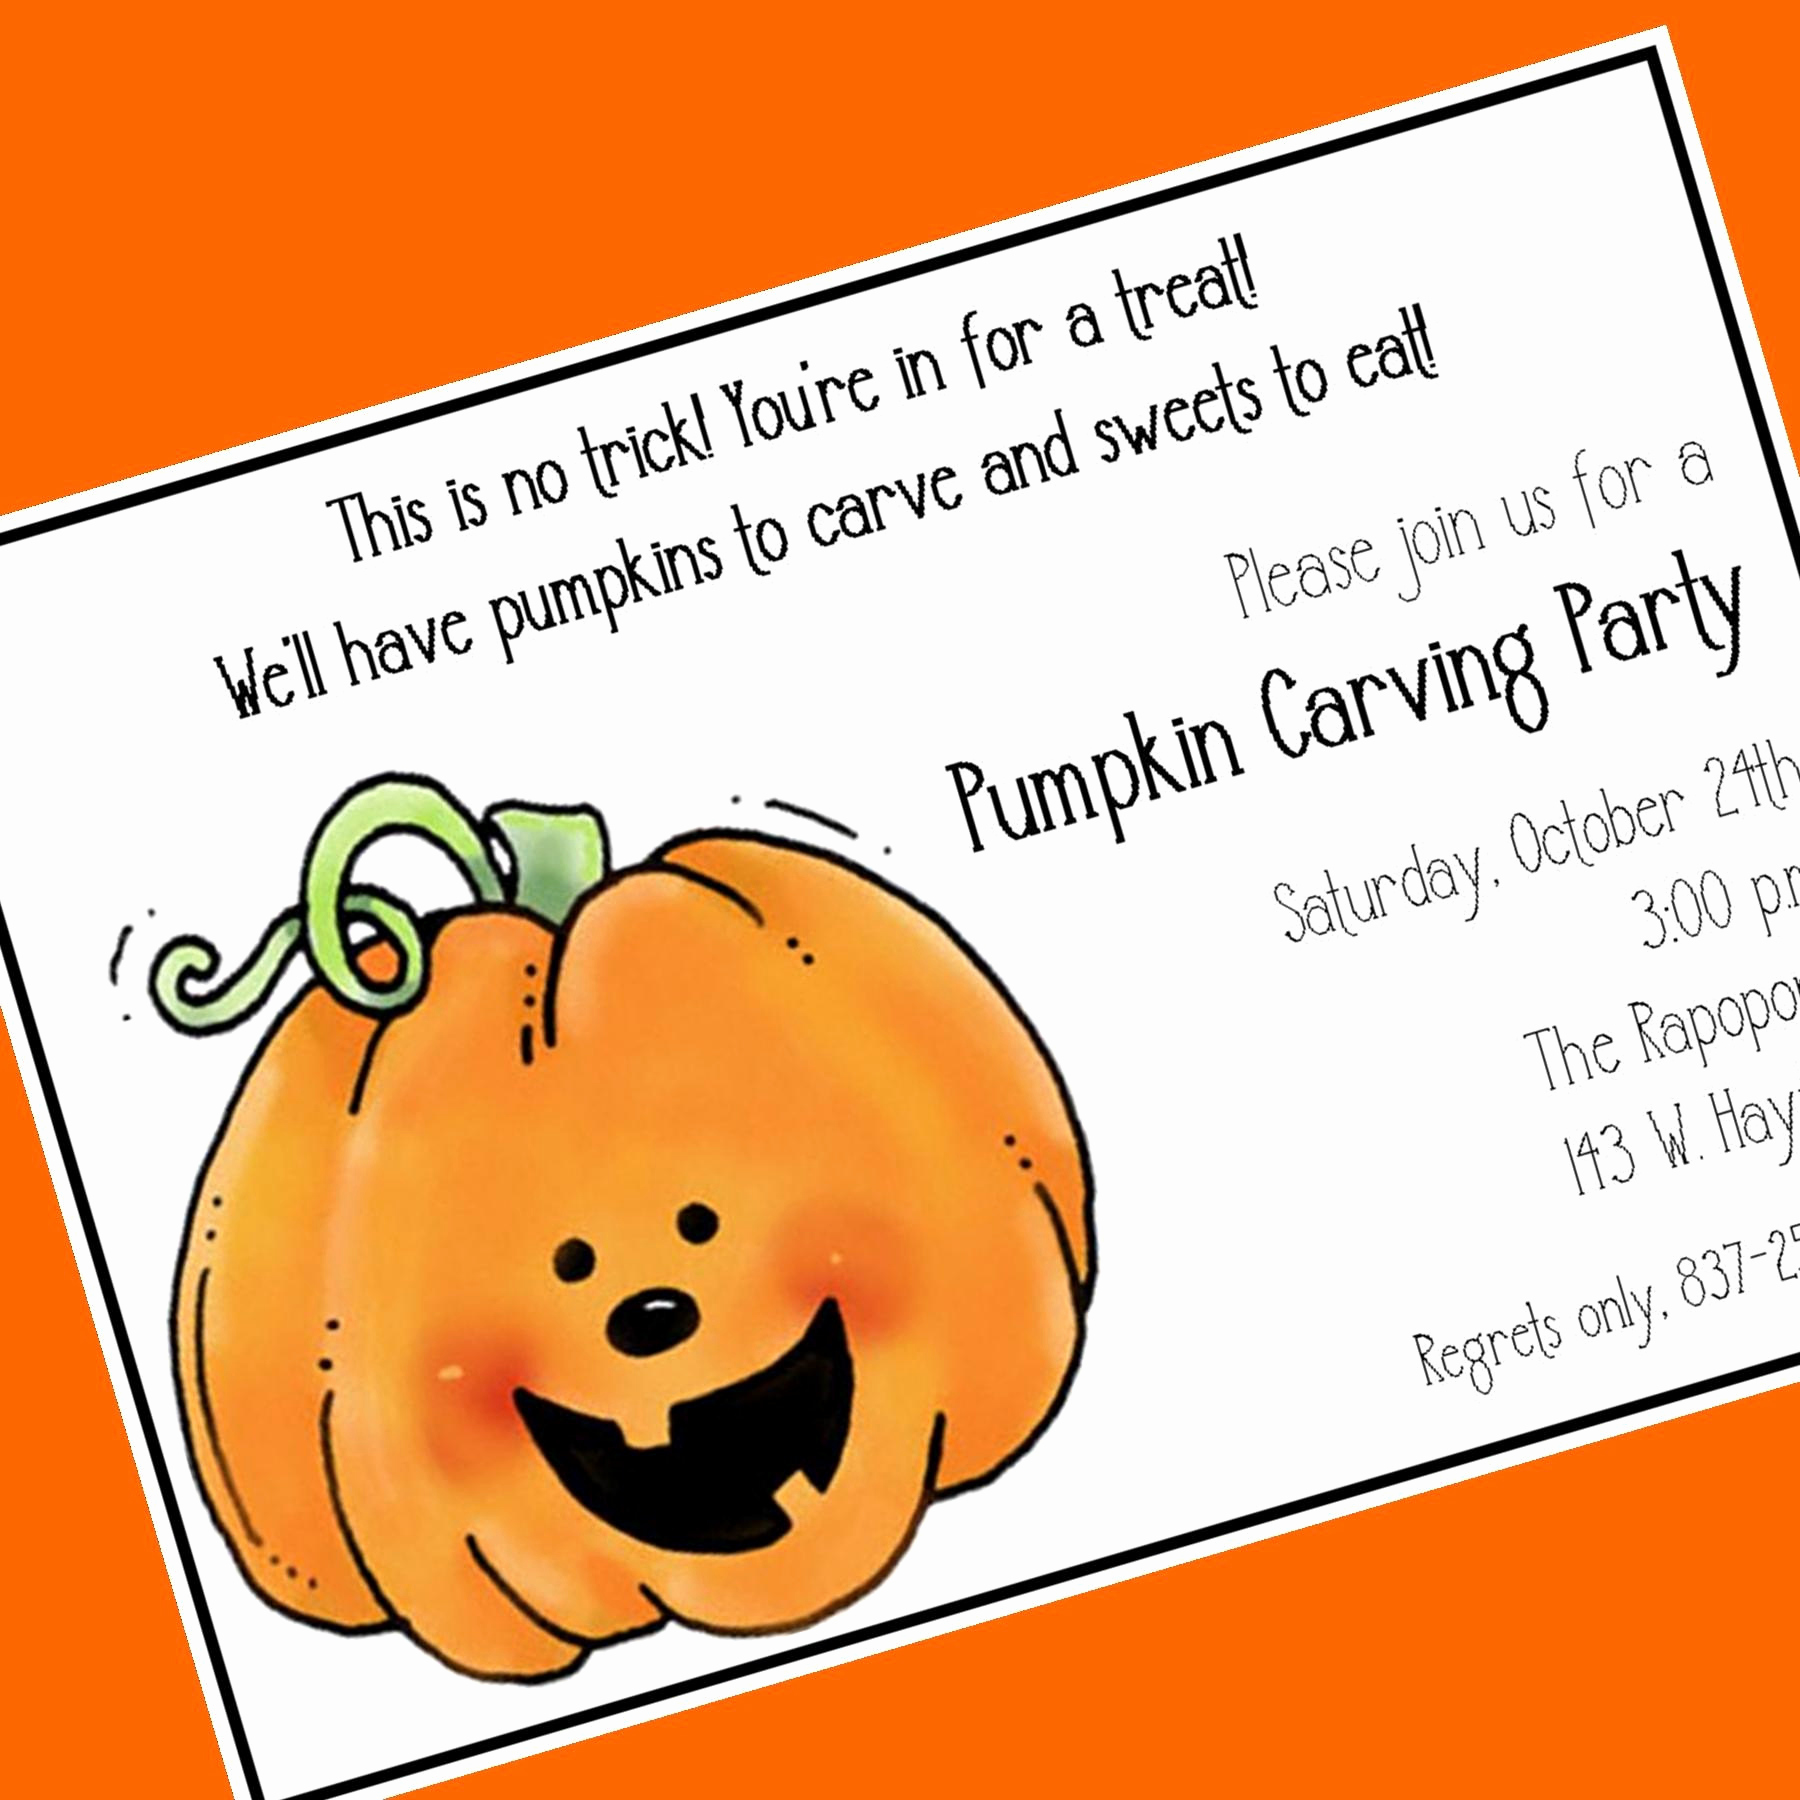 Pumpkin Carving Party Invitation Inspirational Pumpkin Carving Party Invitation Custom Wording 12